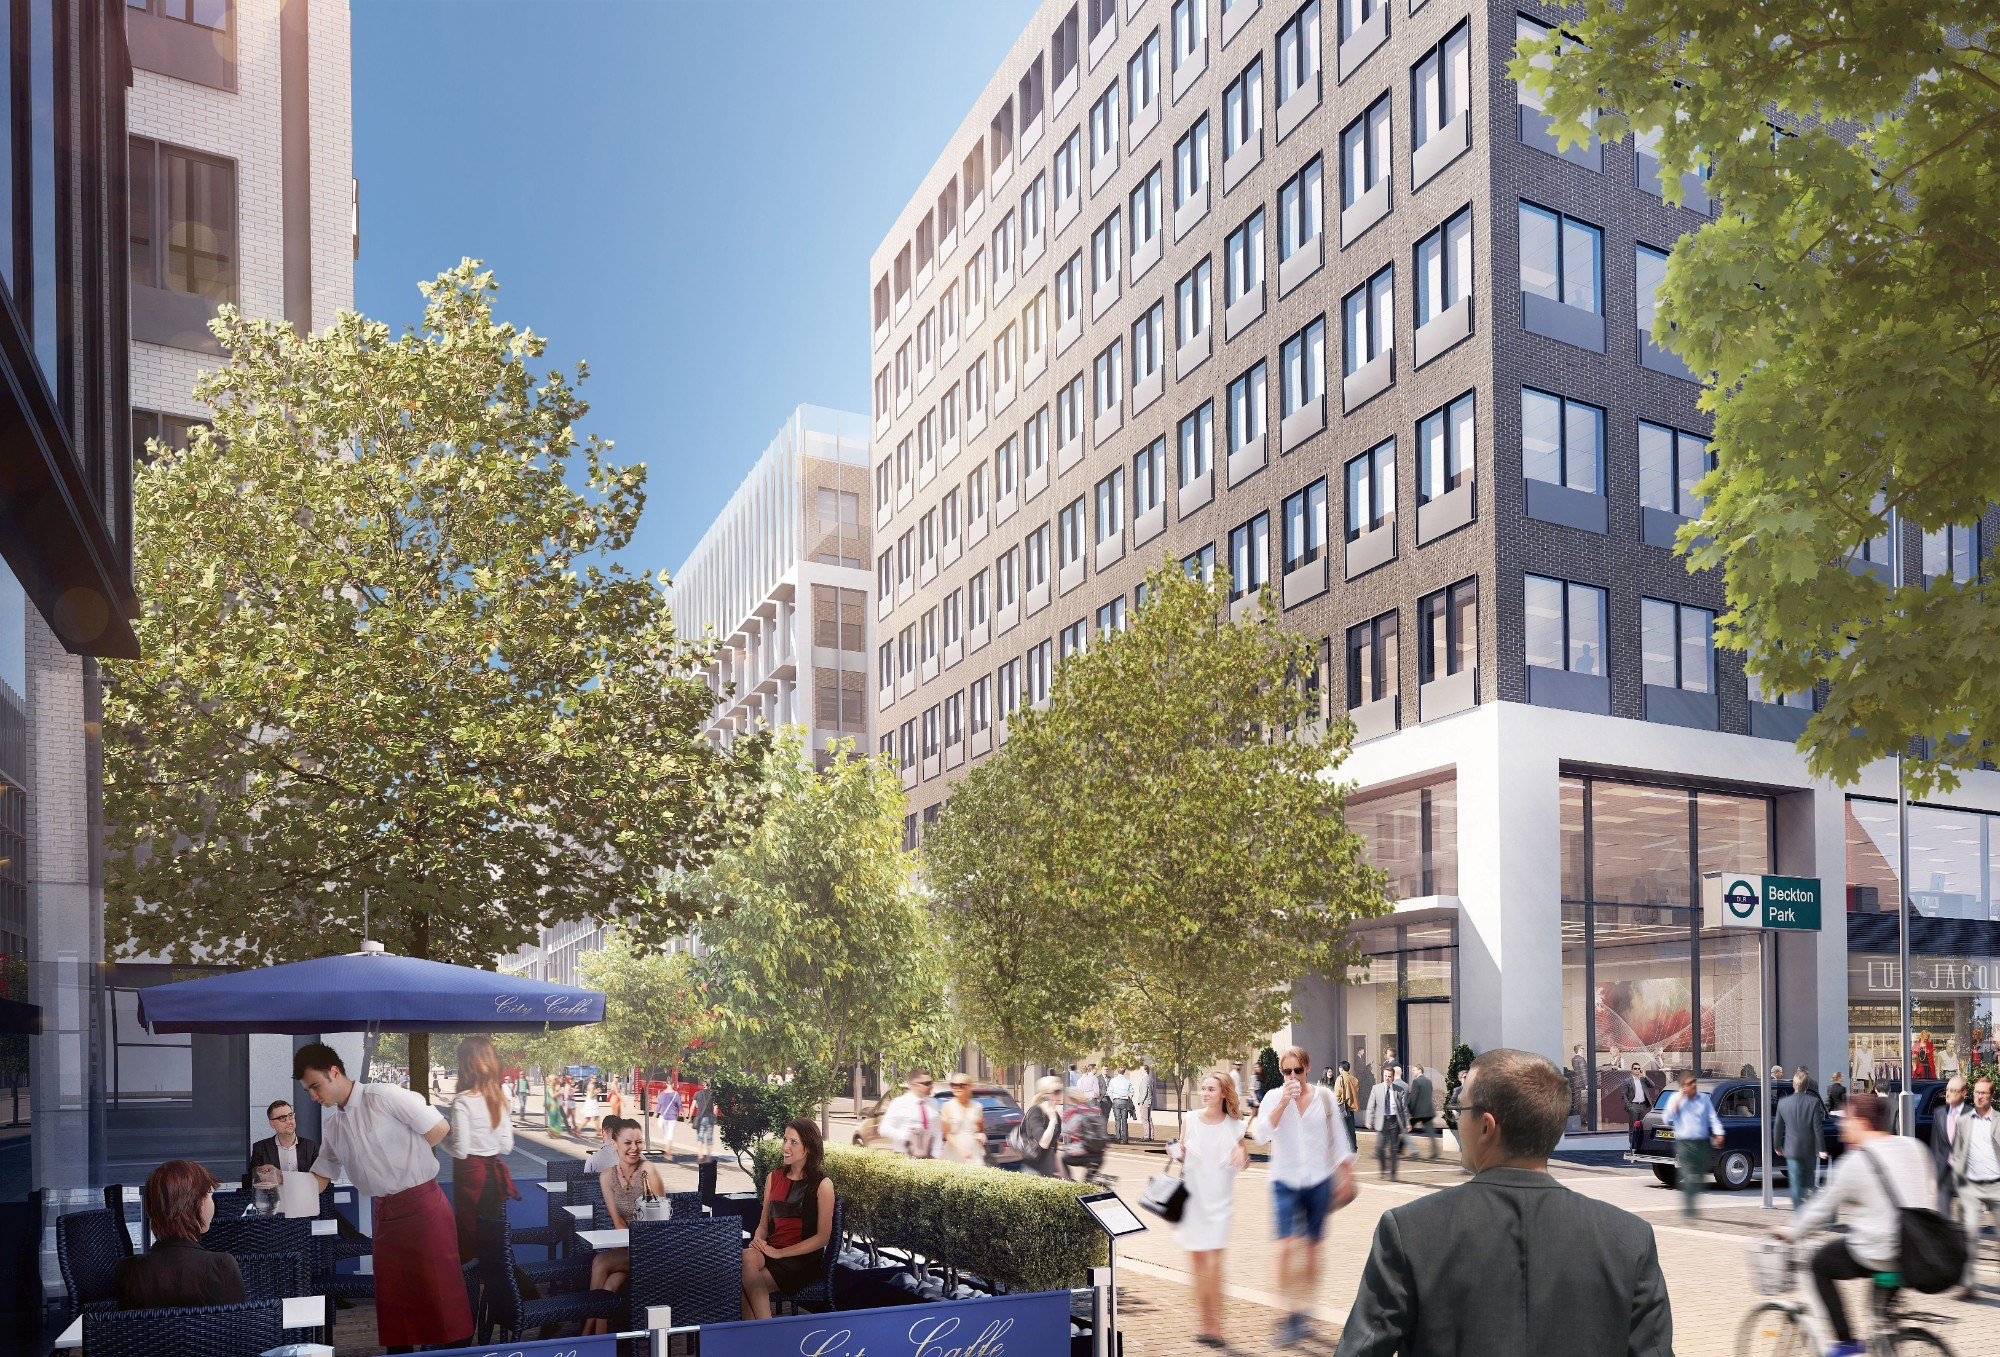 CGI impression of bustling street with people and retail on the ground floor and office buildings on either side